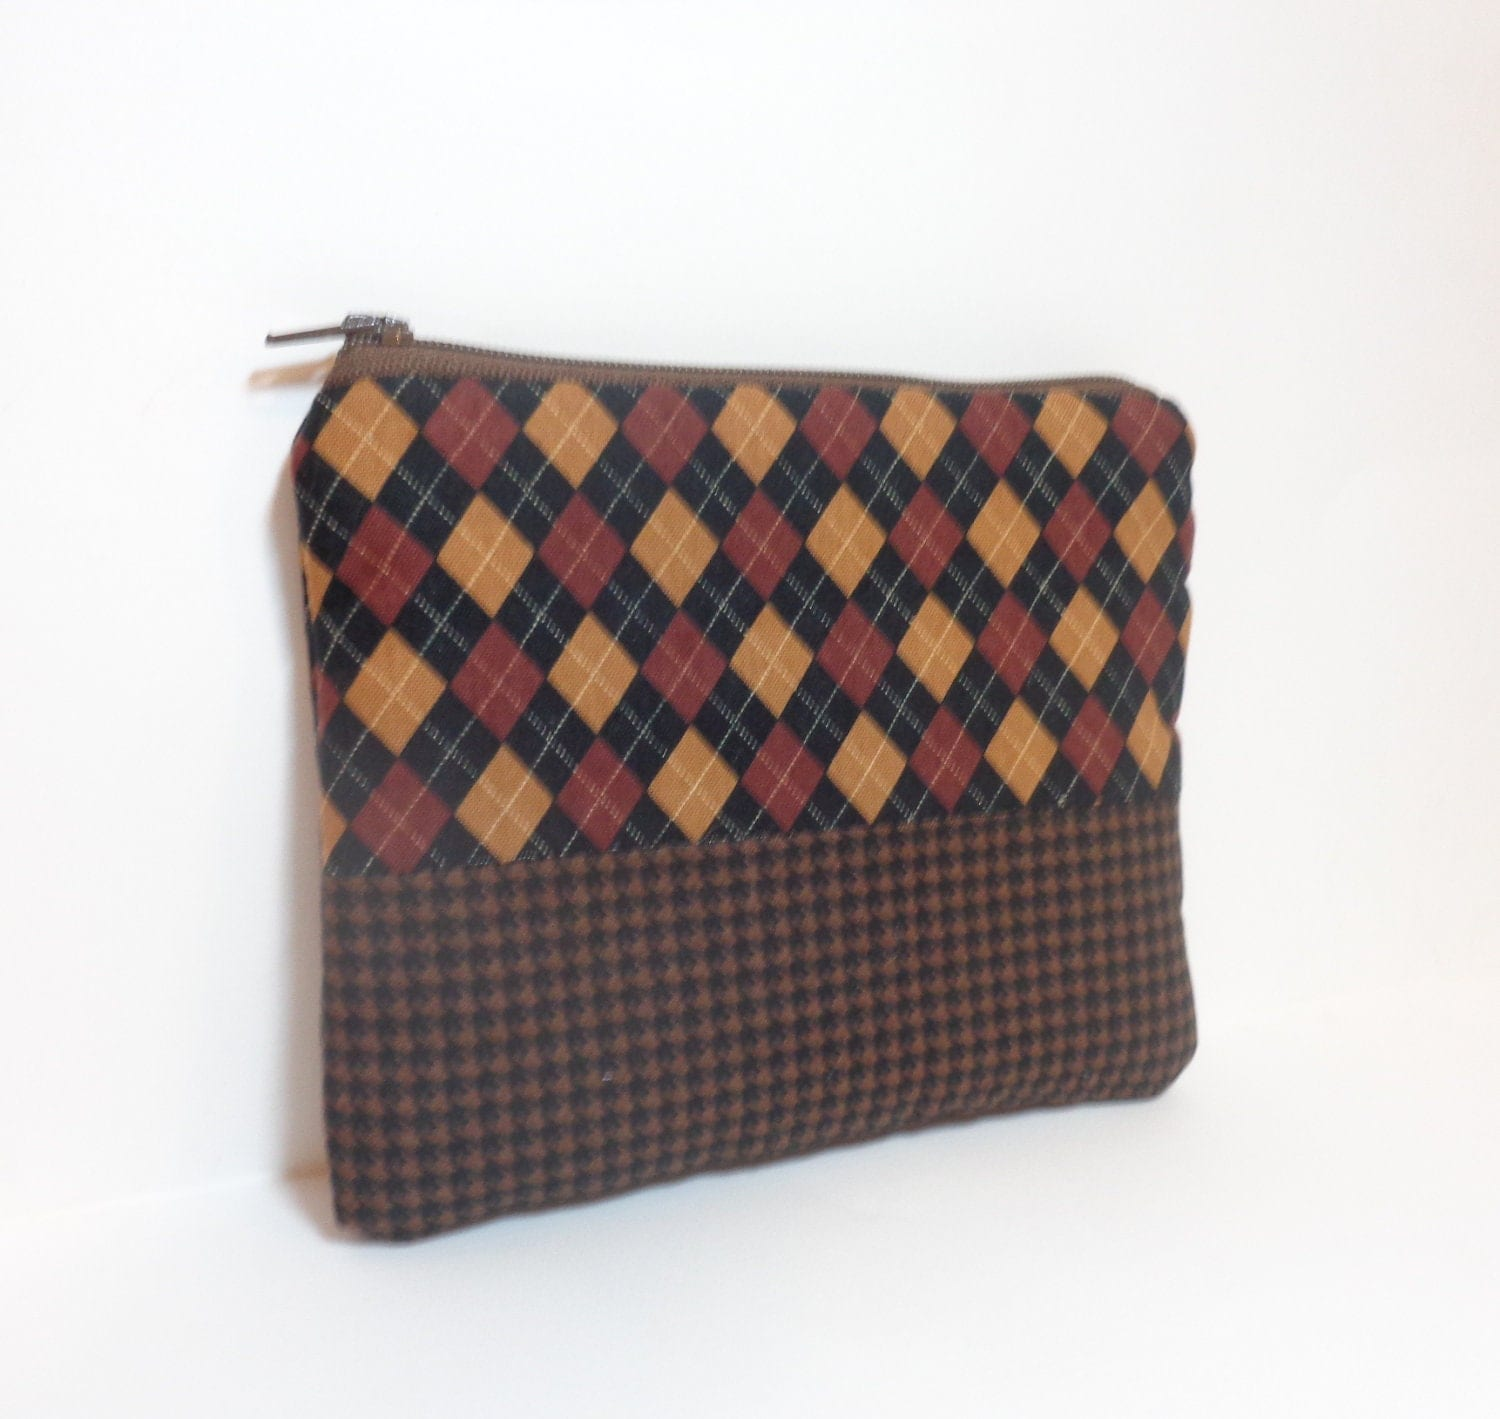 Small Pouch Small Wallet Small Coin Purse Argyle and Houndstooth in Brown - handjstarcreations